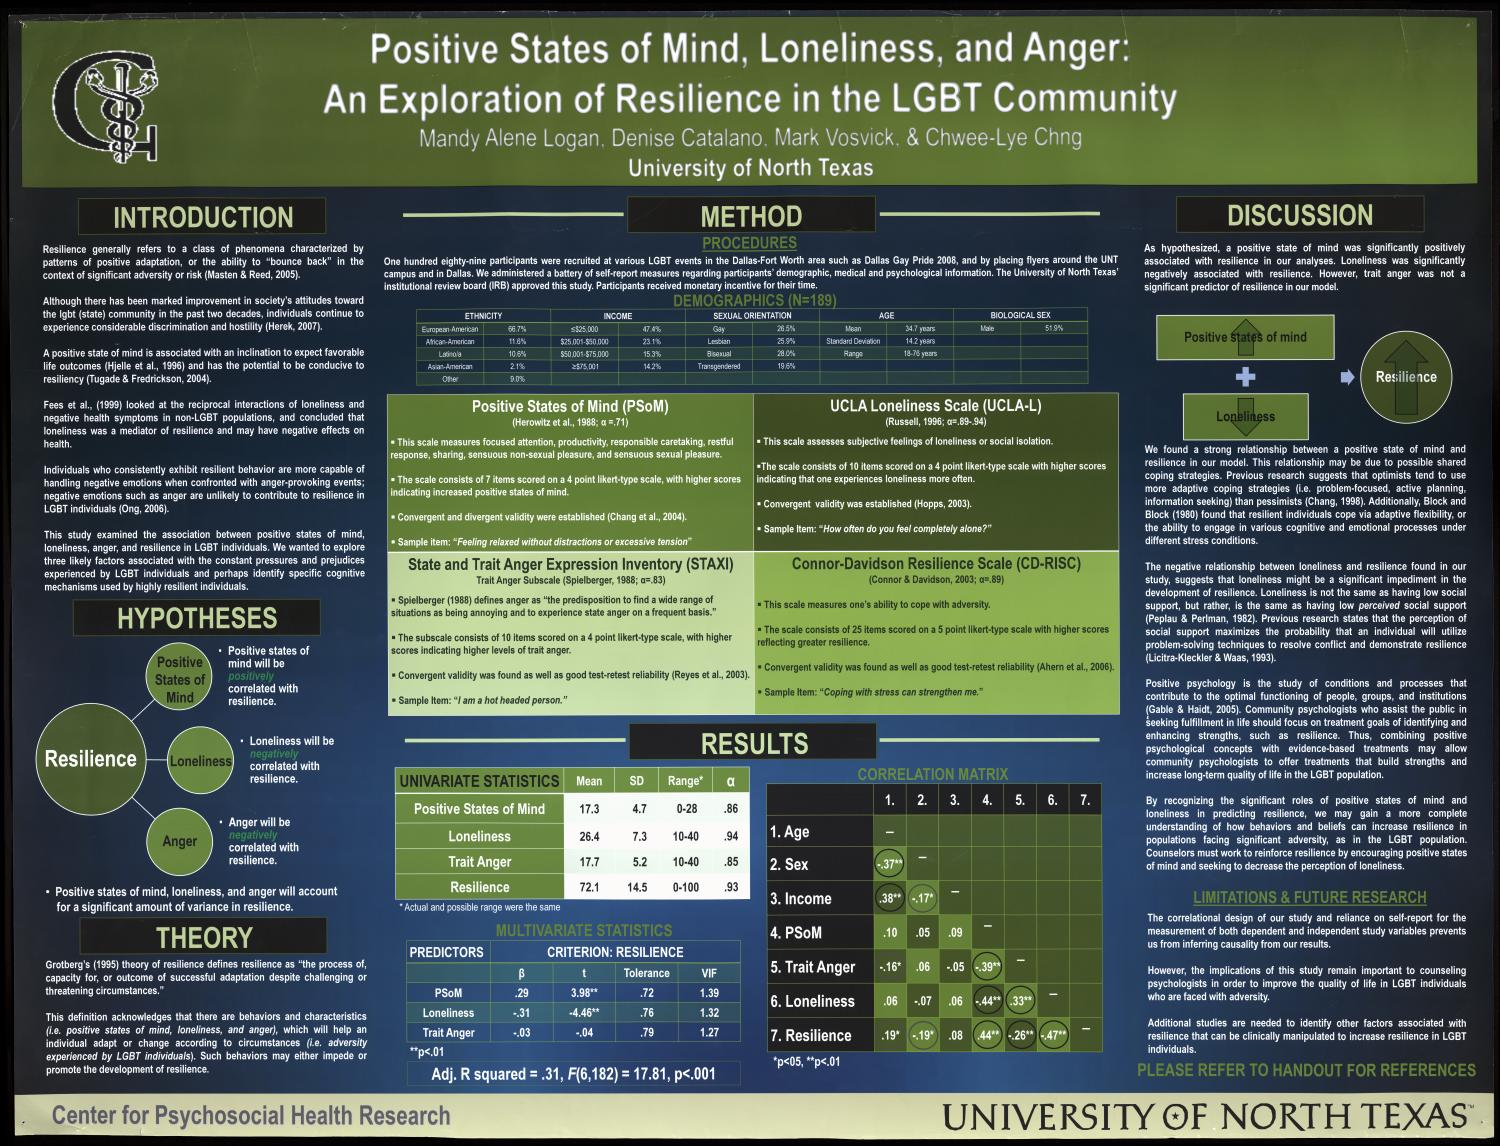 Positive States of Mind, Loneliness, and Anger: An Exploration of Resilience in the LGBT Community                                                                                                      [Sequence #]: 1 of 2